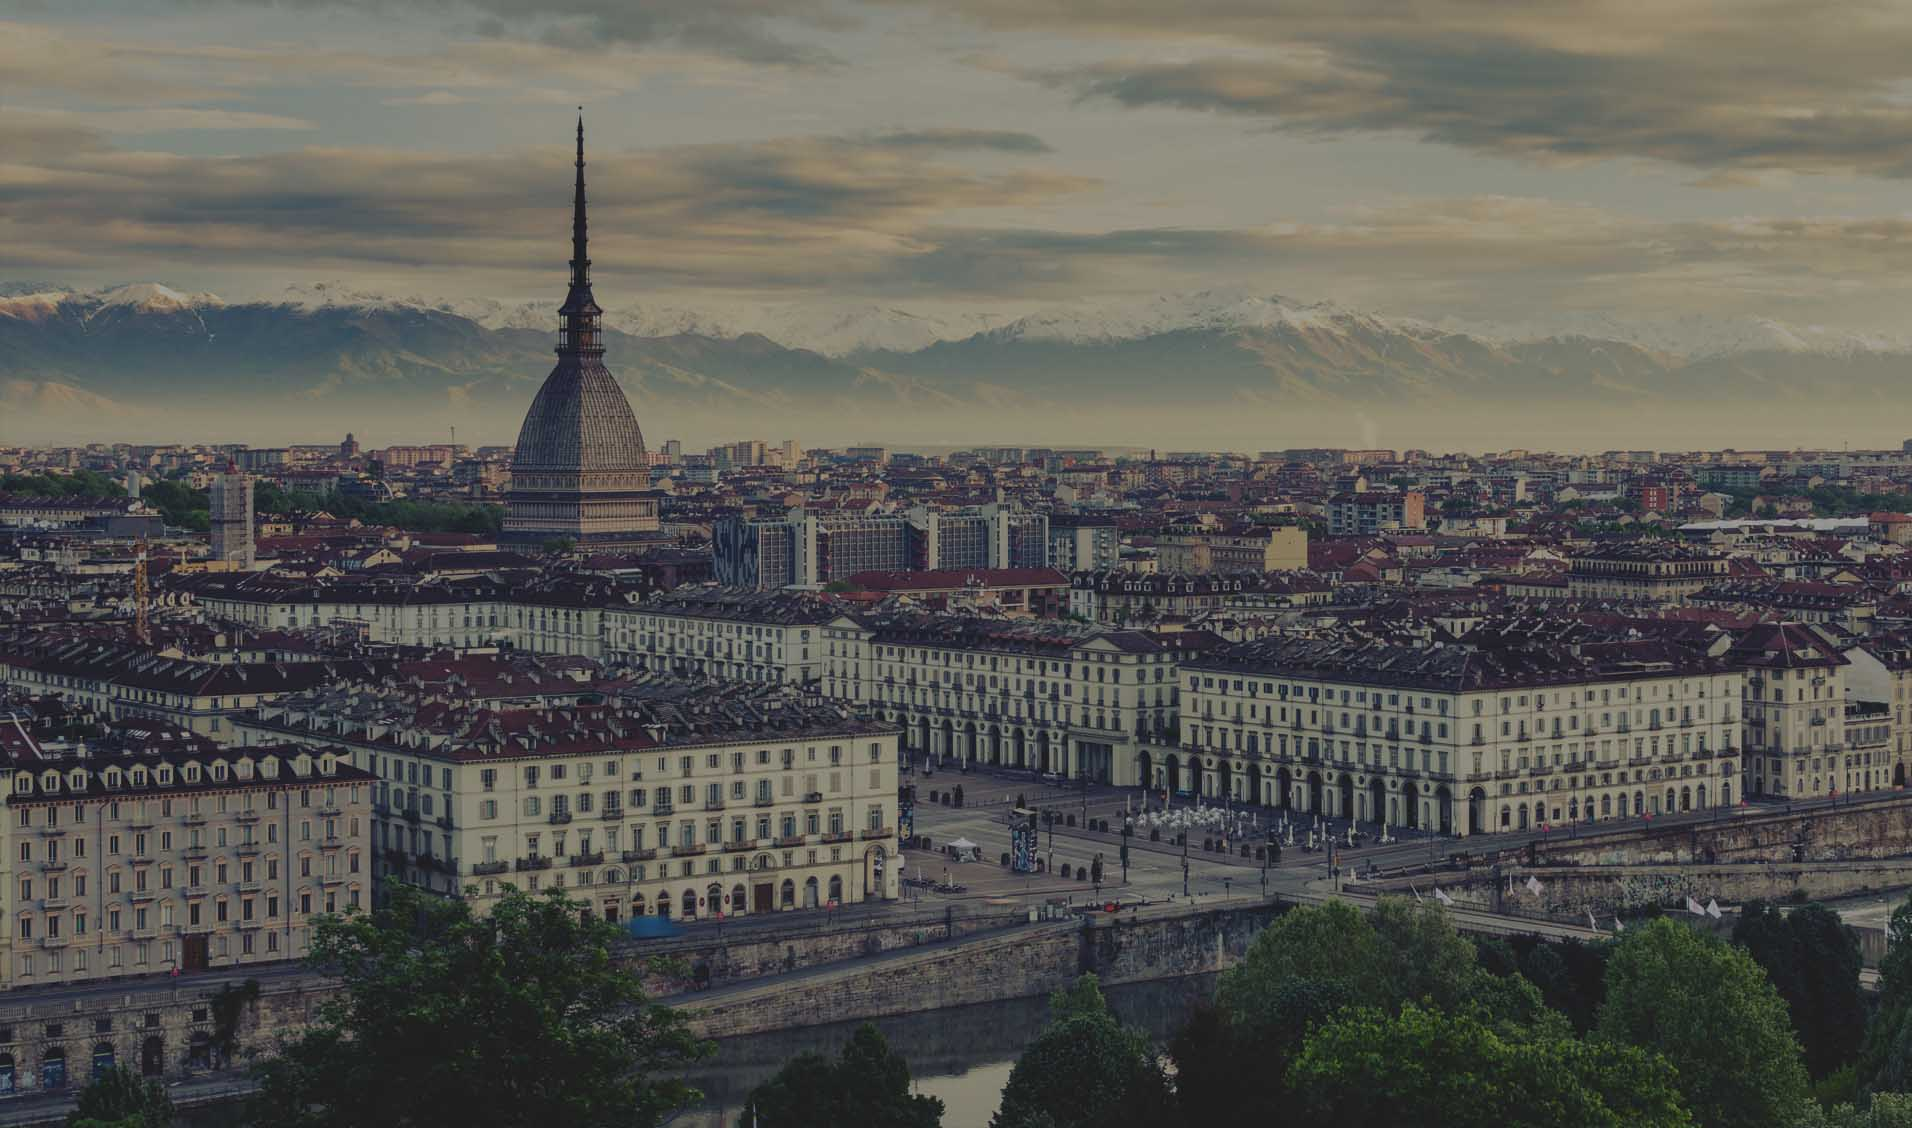 Turin, Italy's first capital.